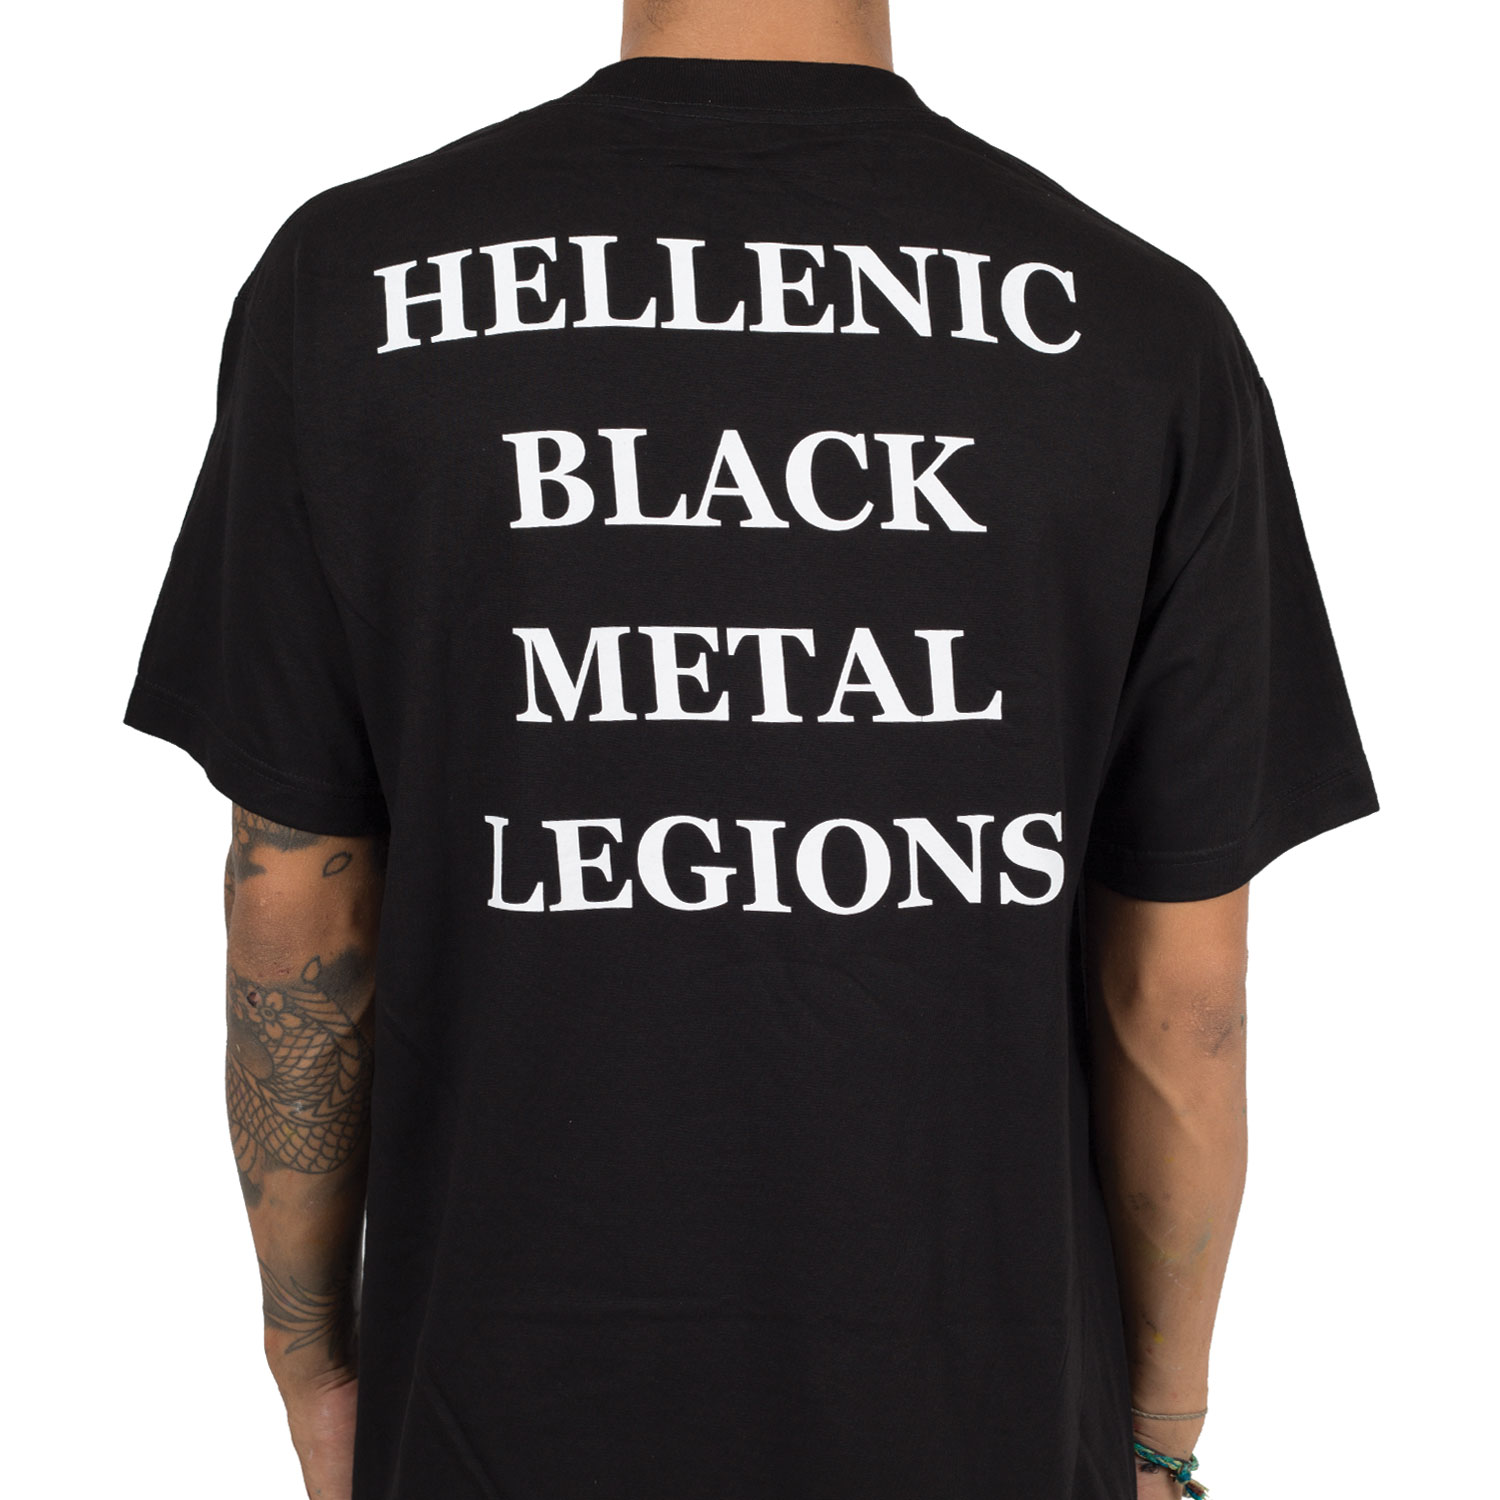 Hellenic Black Metal Legions T-shirt Rotting Christ Herrenmode Kleidung & Accessoires